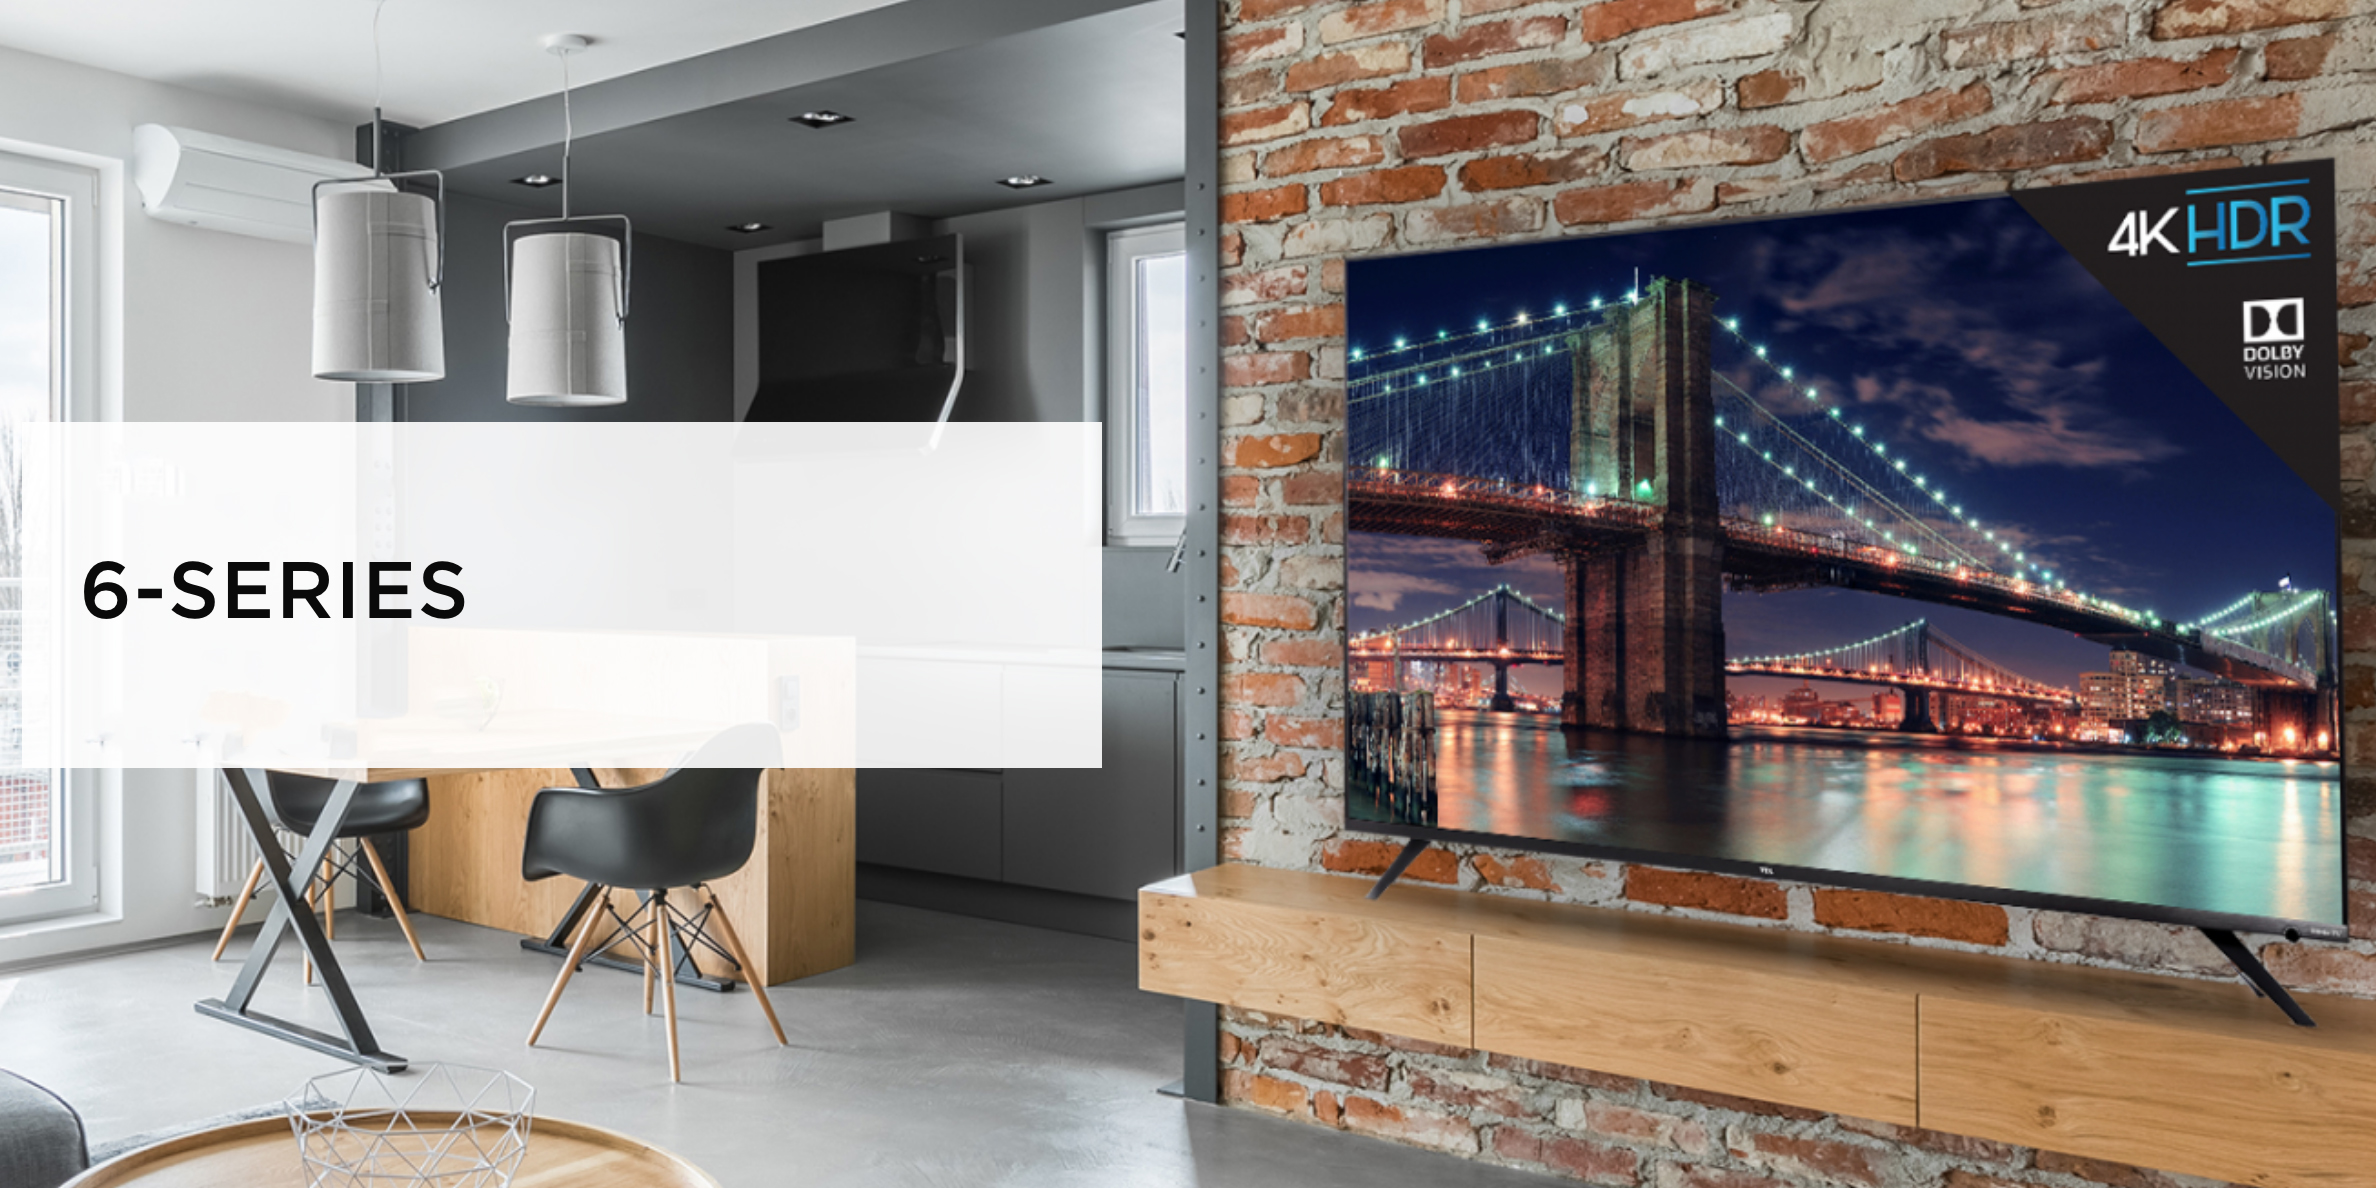 Memorial Day Home Theater from $48: 65-inch 4K Roku Dolby Vision, soundbars, more